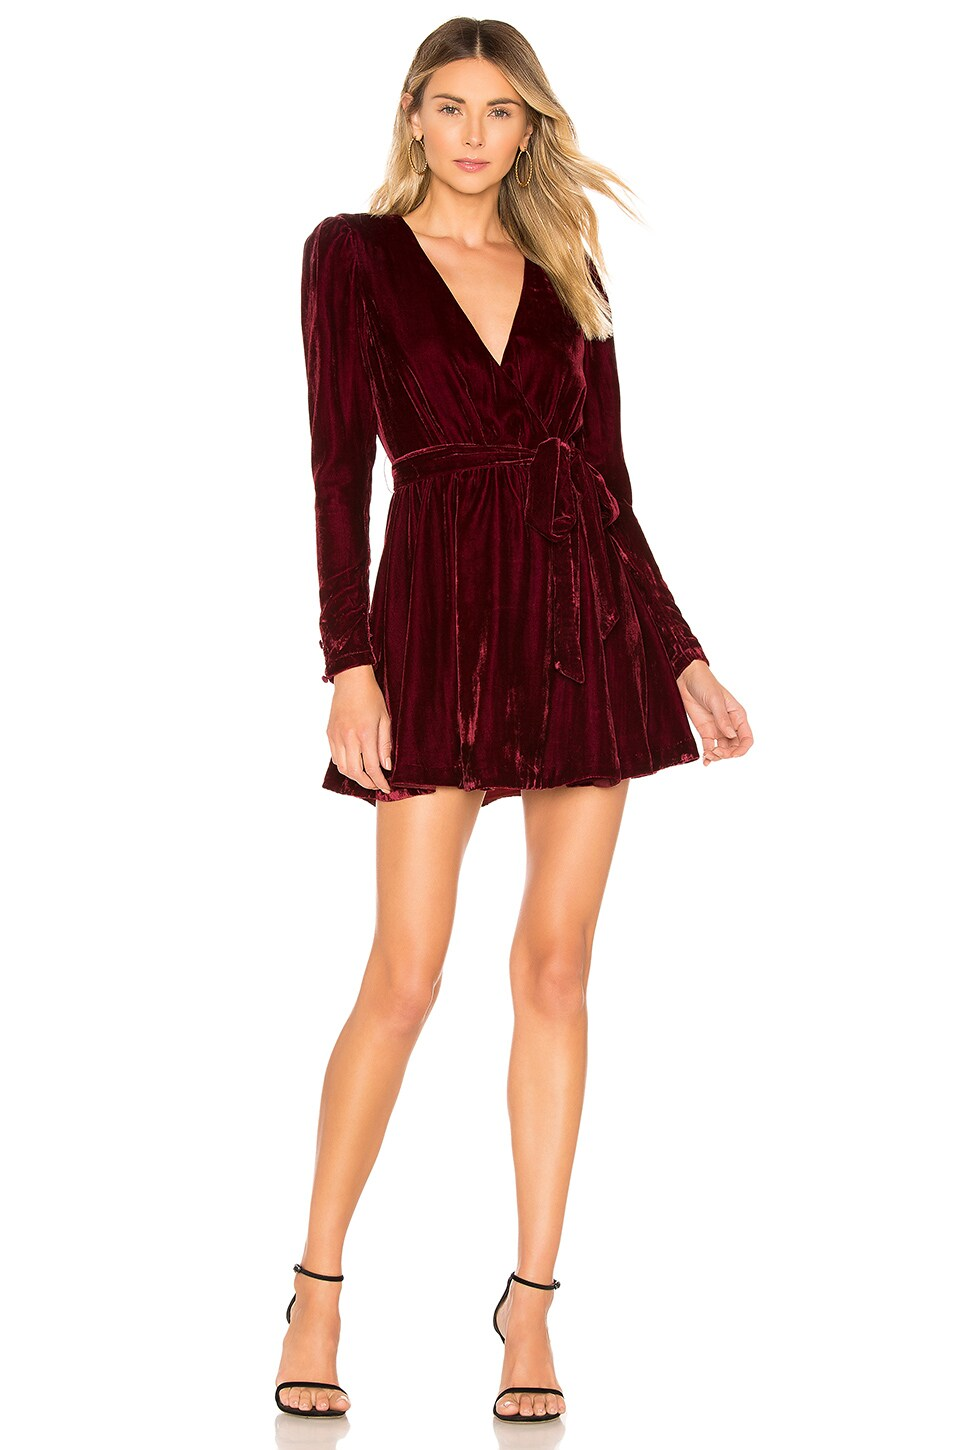 L'Academie The Chrissy Mini Dress in Sangria Red